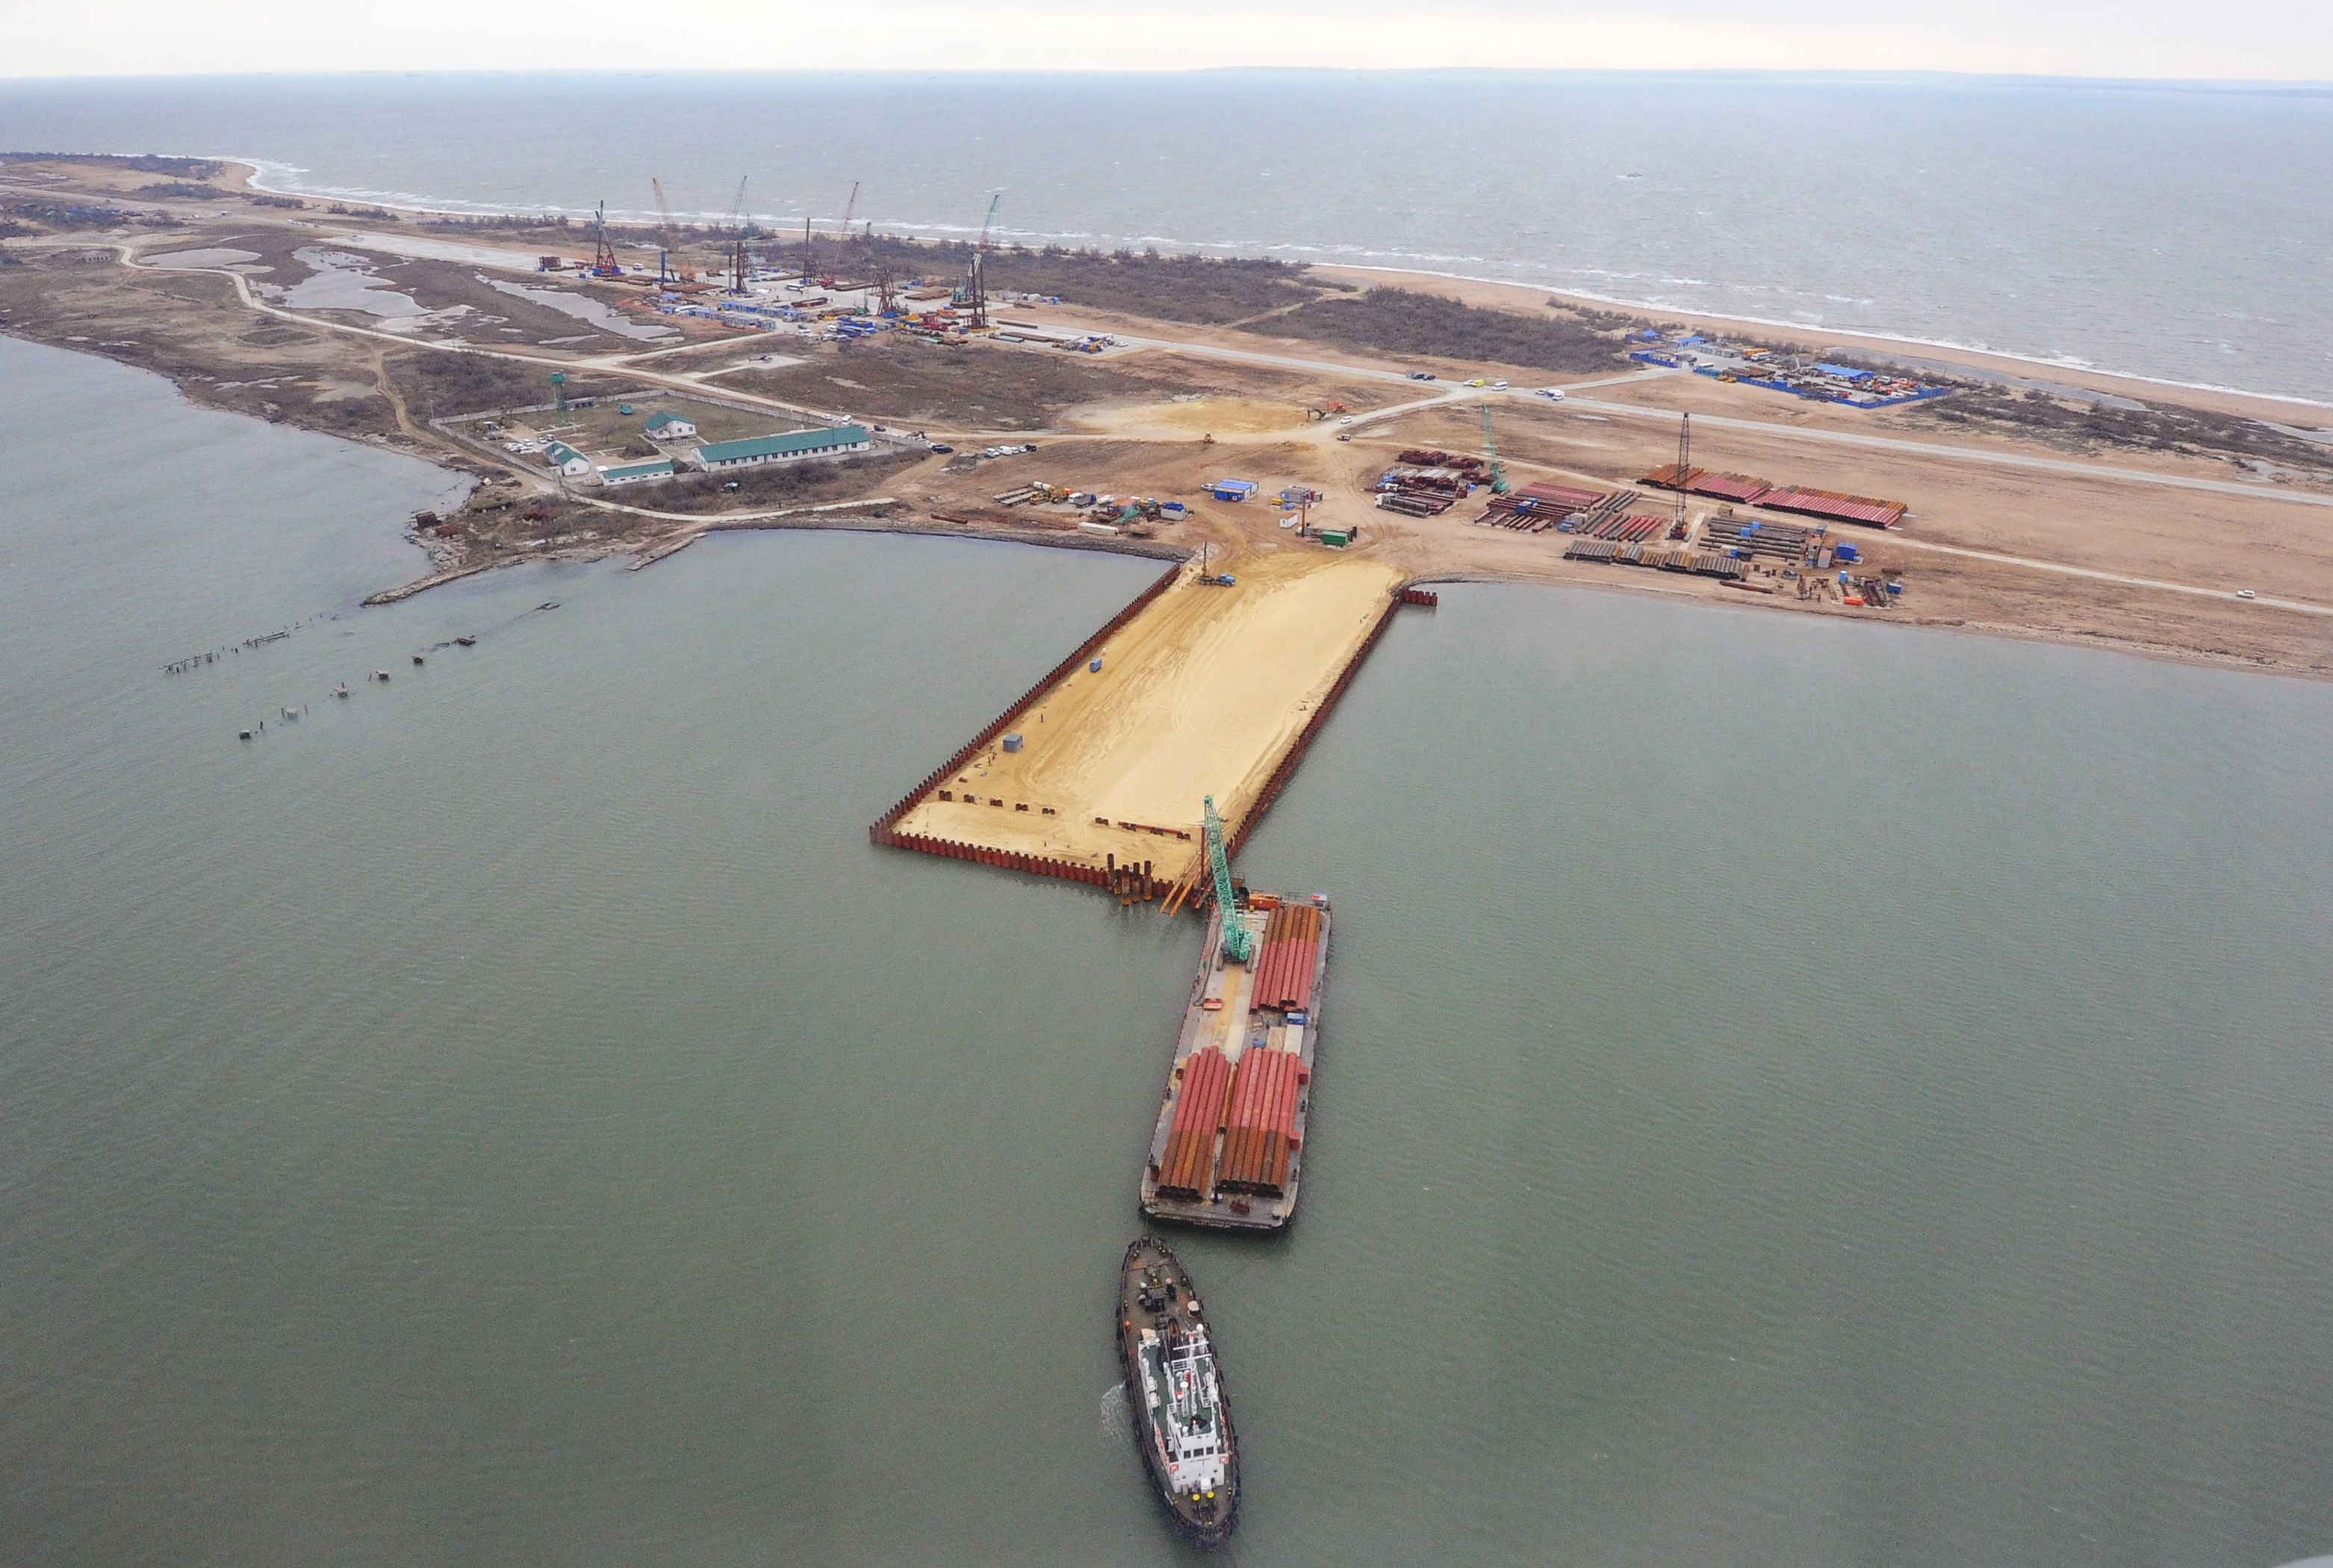 An aerial view of the construction site of a bridge across the Kerch Strait.